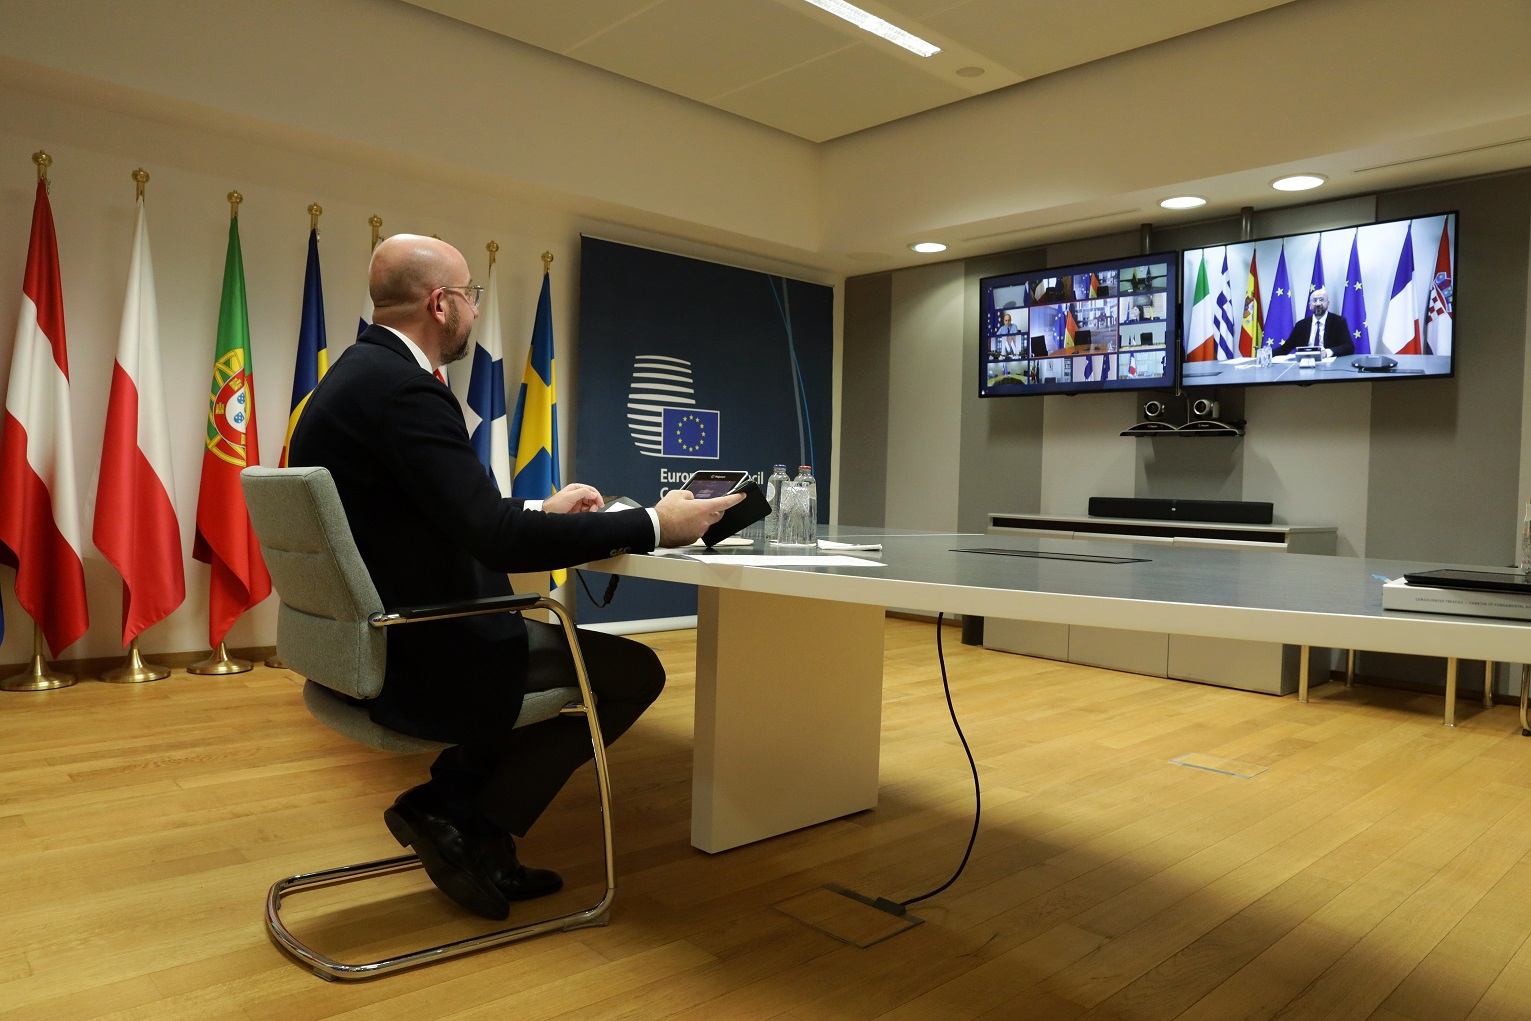 EU heads of state gathered for a videoconference said a return to economic and social normality will demand 'unprecented investment'. Image credit: European Union